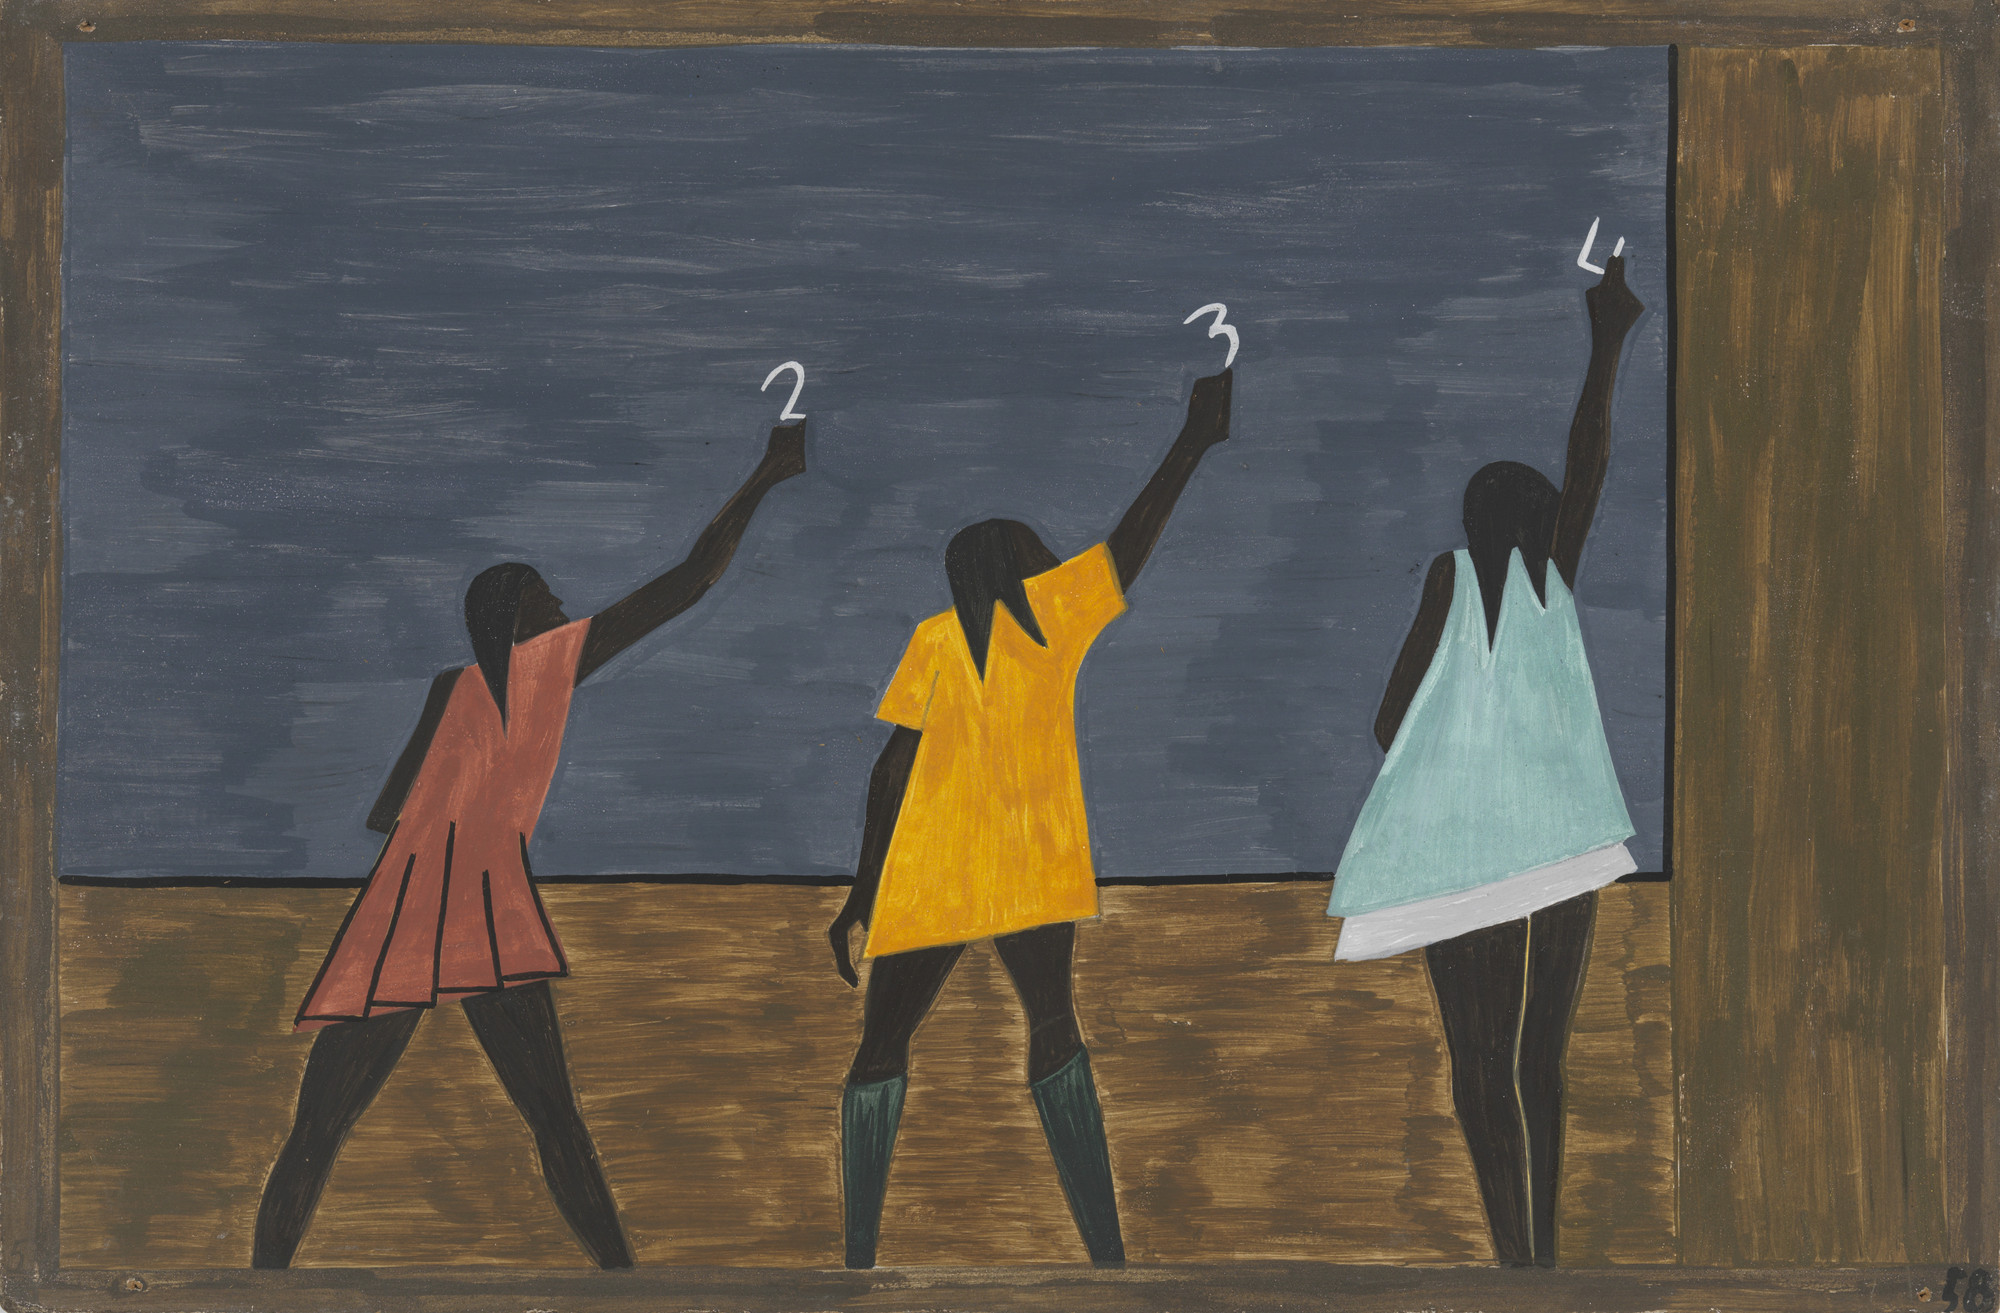 Jacob Lawrence. In the North the Negro had better educational facilities. 1940-41